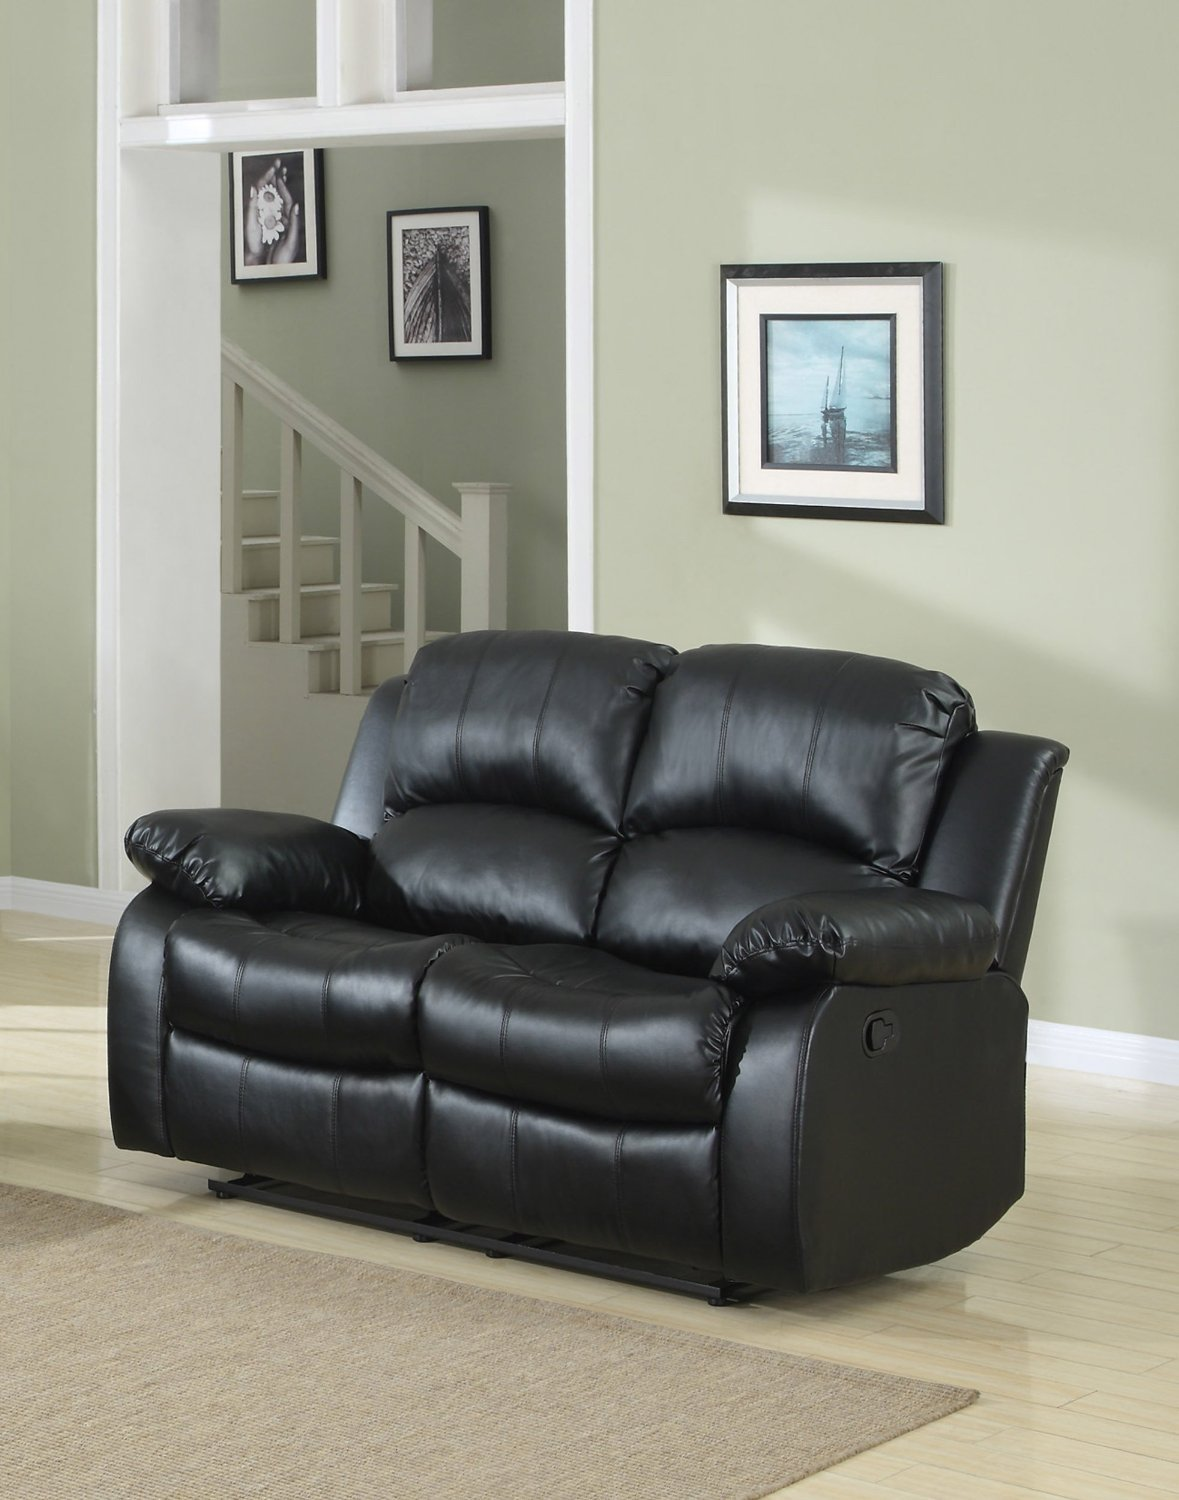 recliner reclining furniture cream room living site piece power westerncycles sofa leather seater